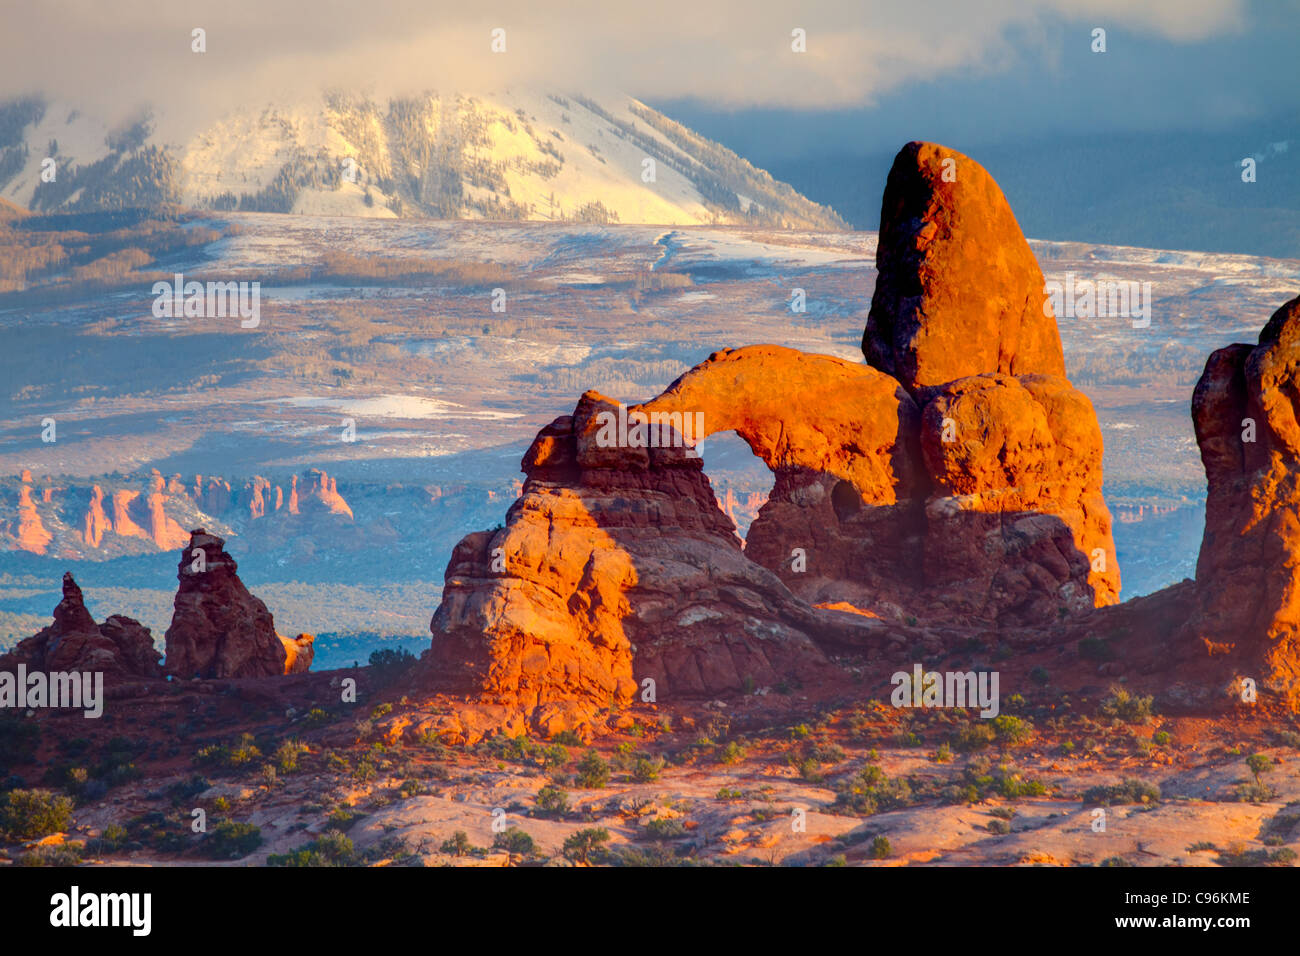 Turret Arch and La Sal Mountains, Arches National Park, Utah Windows Section Sunset - Stock Image